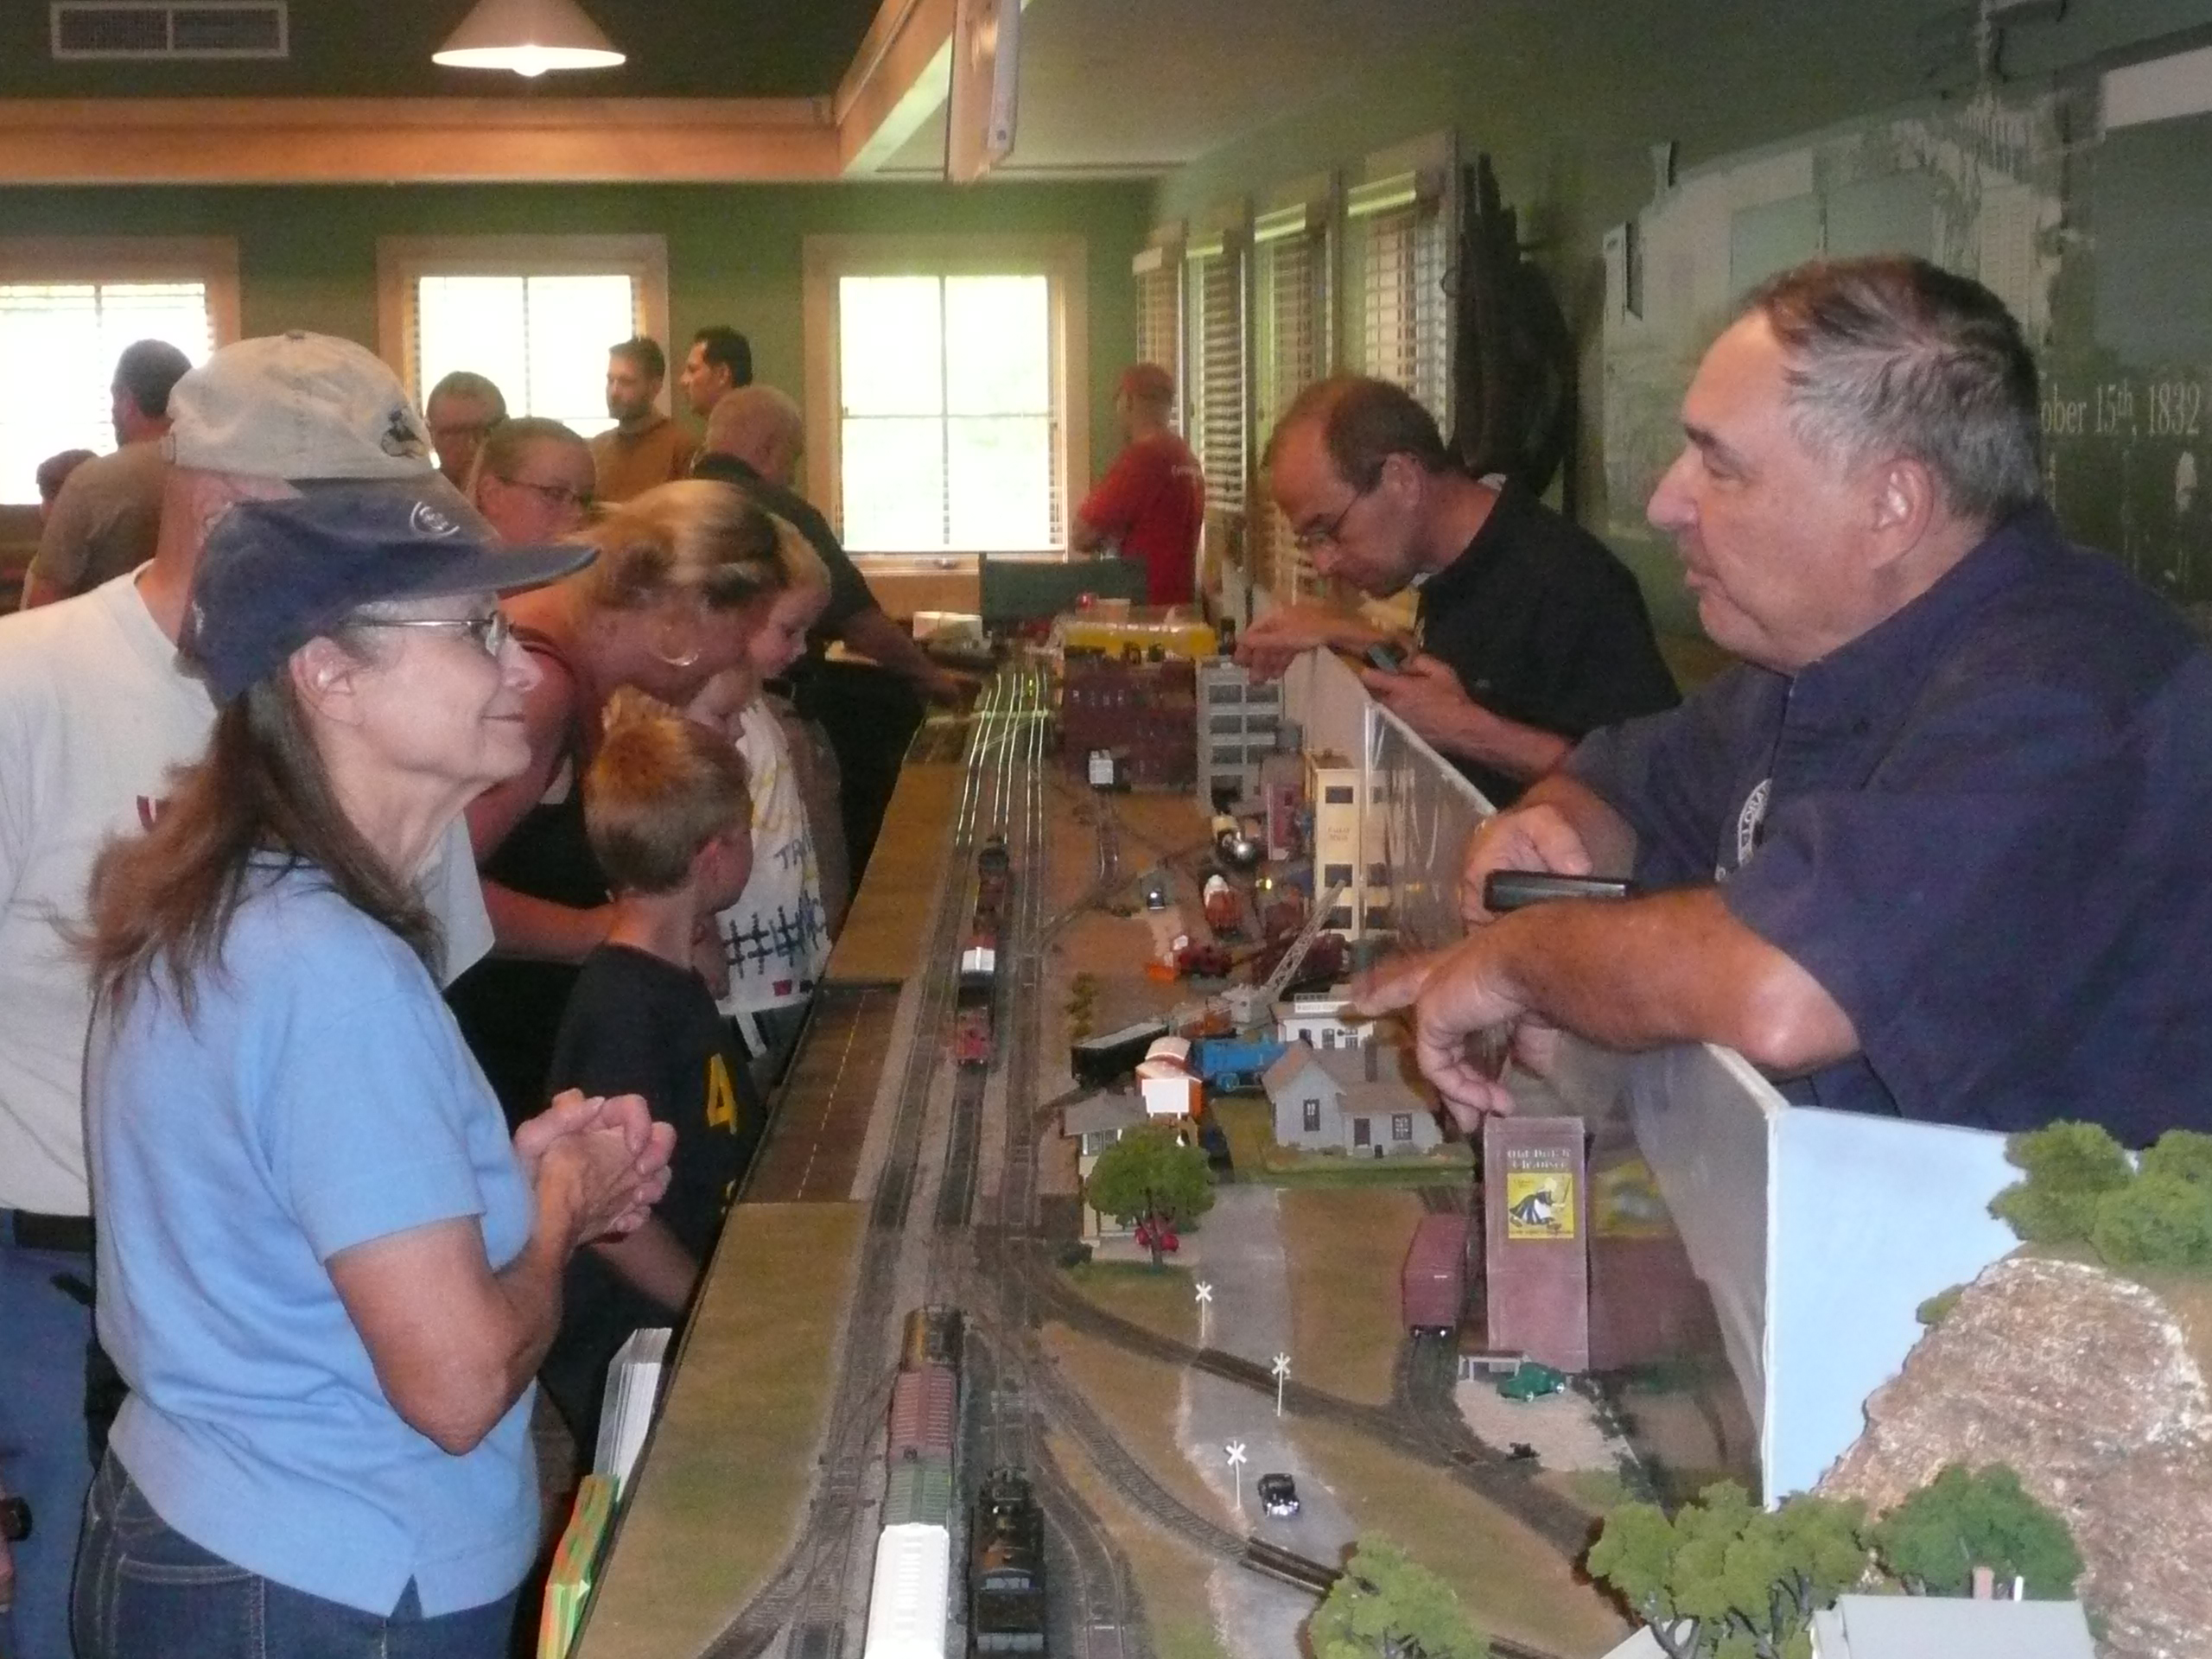 ALL ABOARD! A NEW RAILROAD-THEMED WEEKEND CHUGS INTO CLEVELAND METROPARKS CANALWAY CENTER